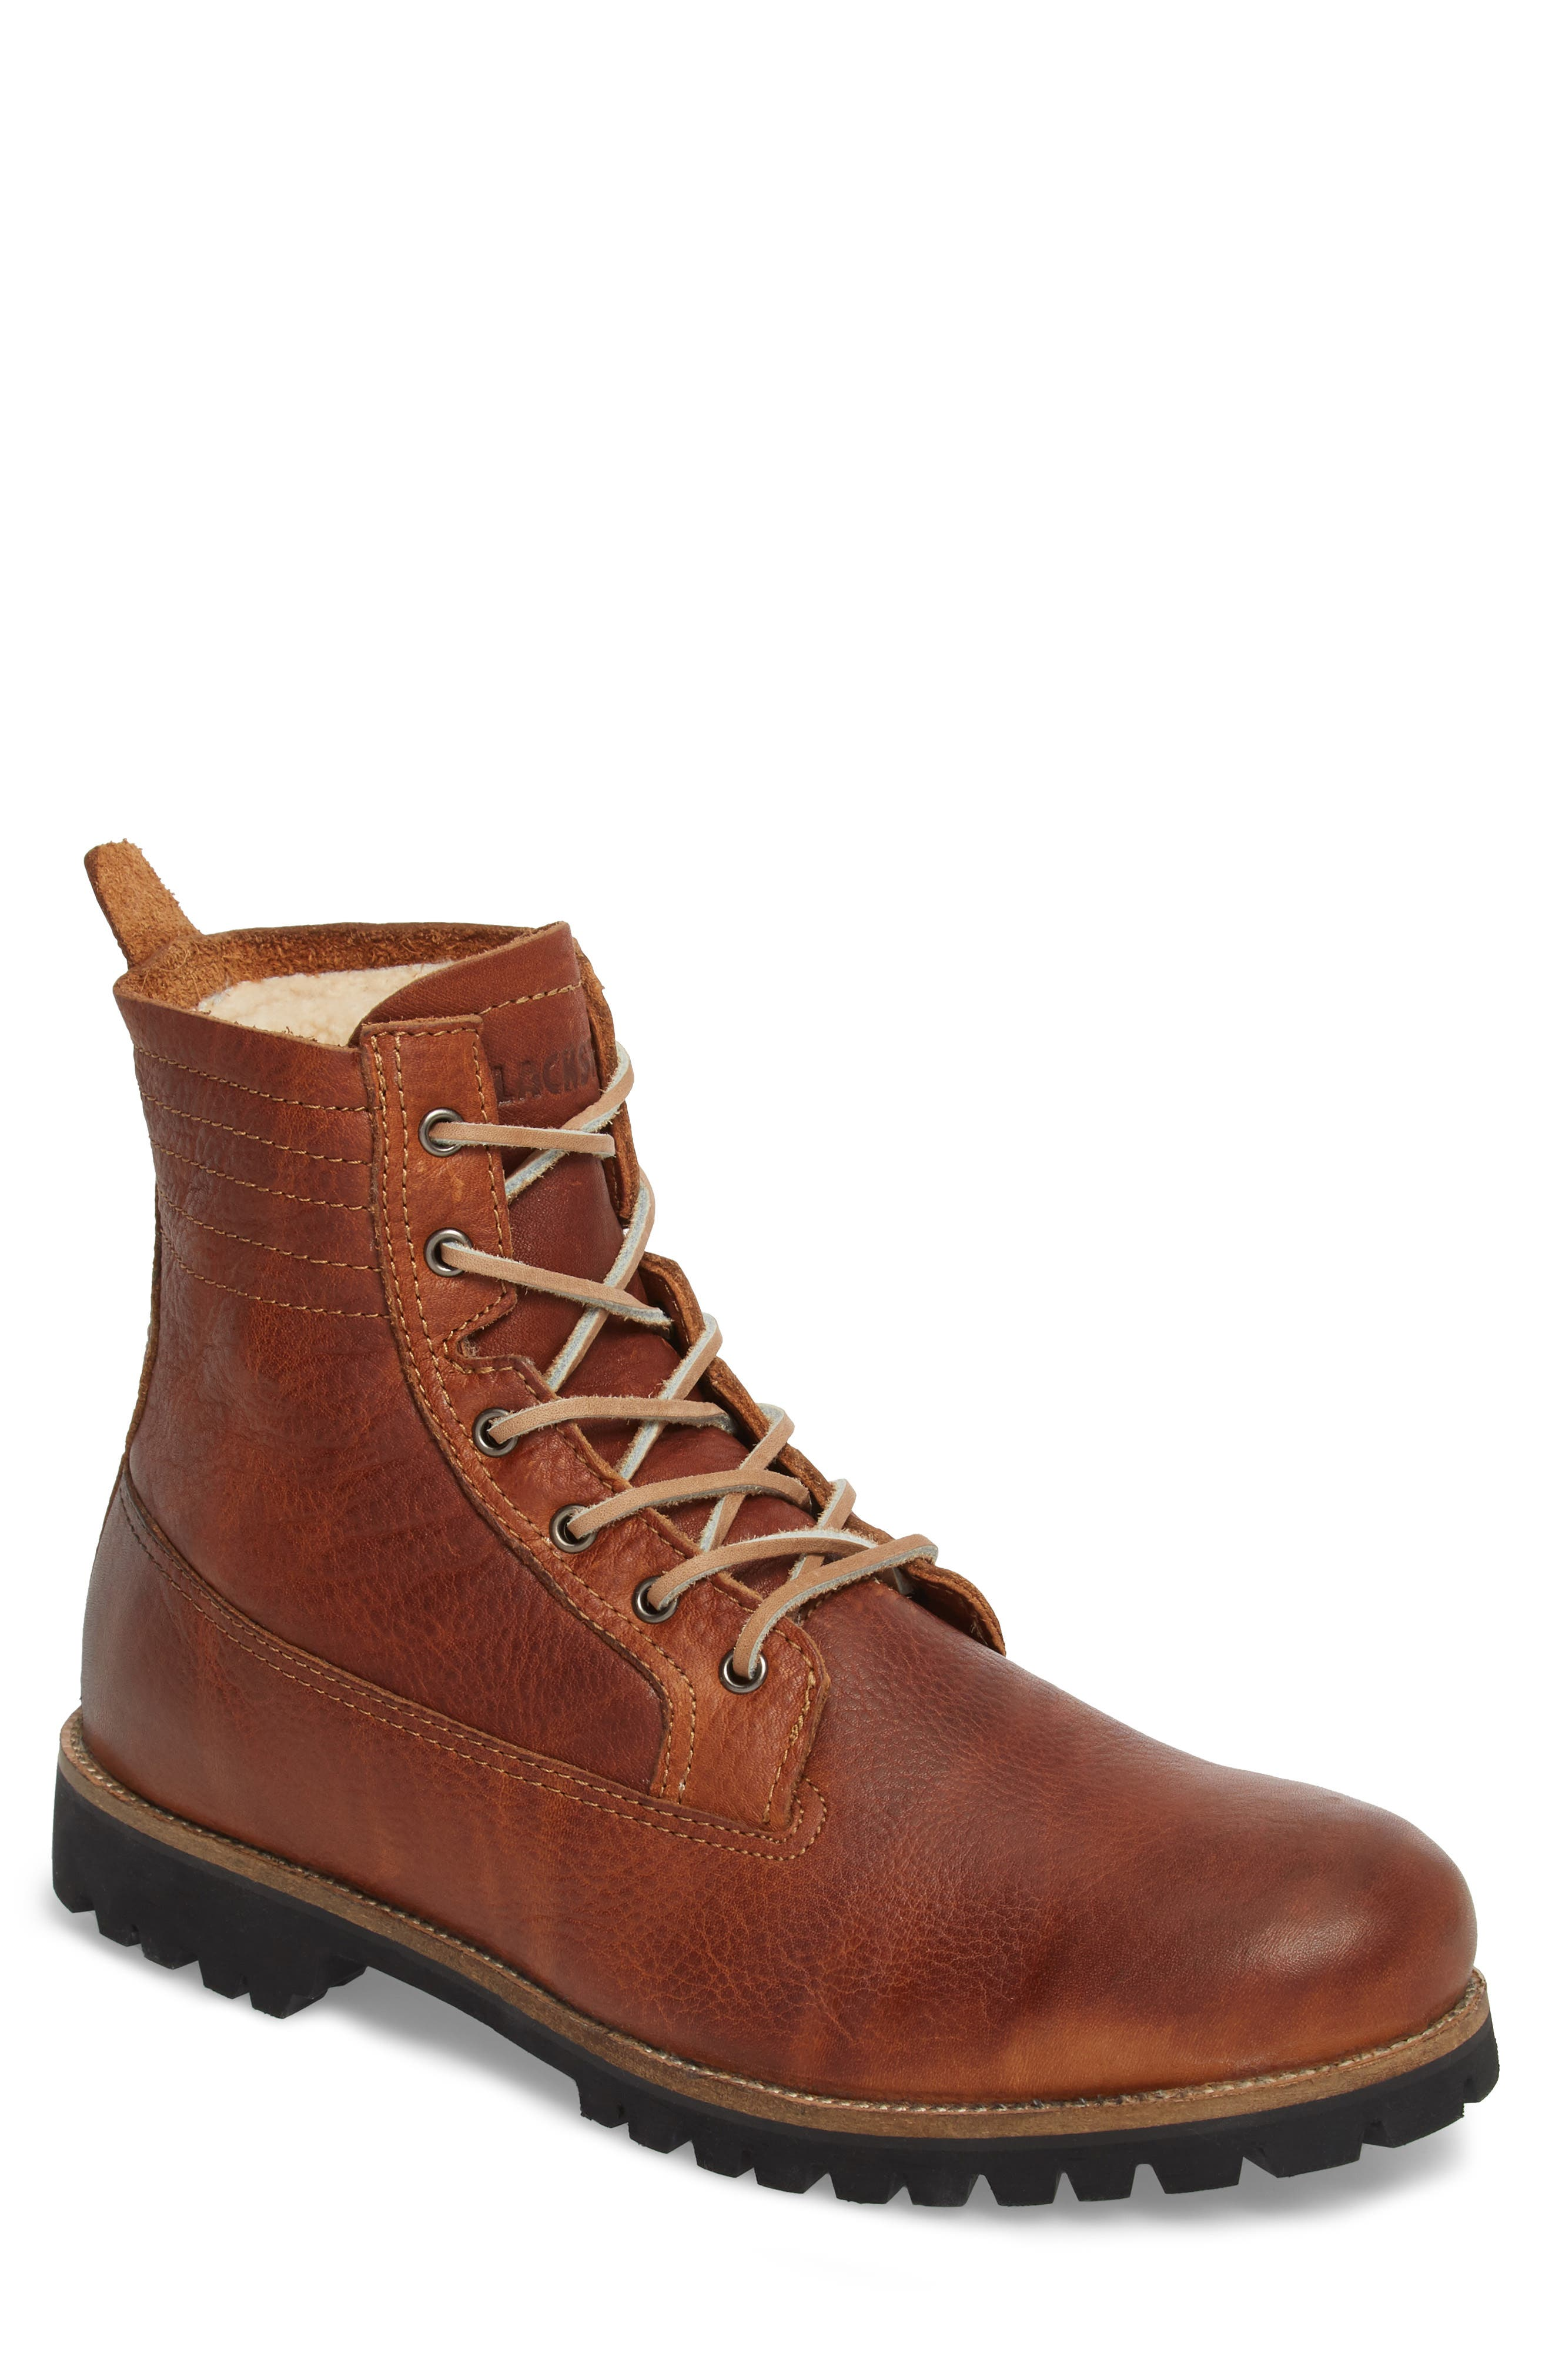 IM 12 Plain Toe Boot with Genuine Shearling,                             Main thumbnail 1, color,                             Cuoio Leather